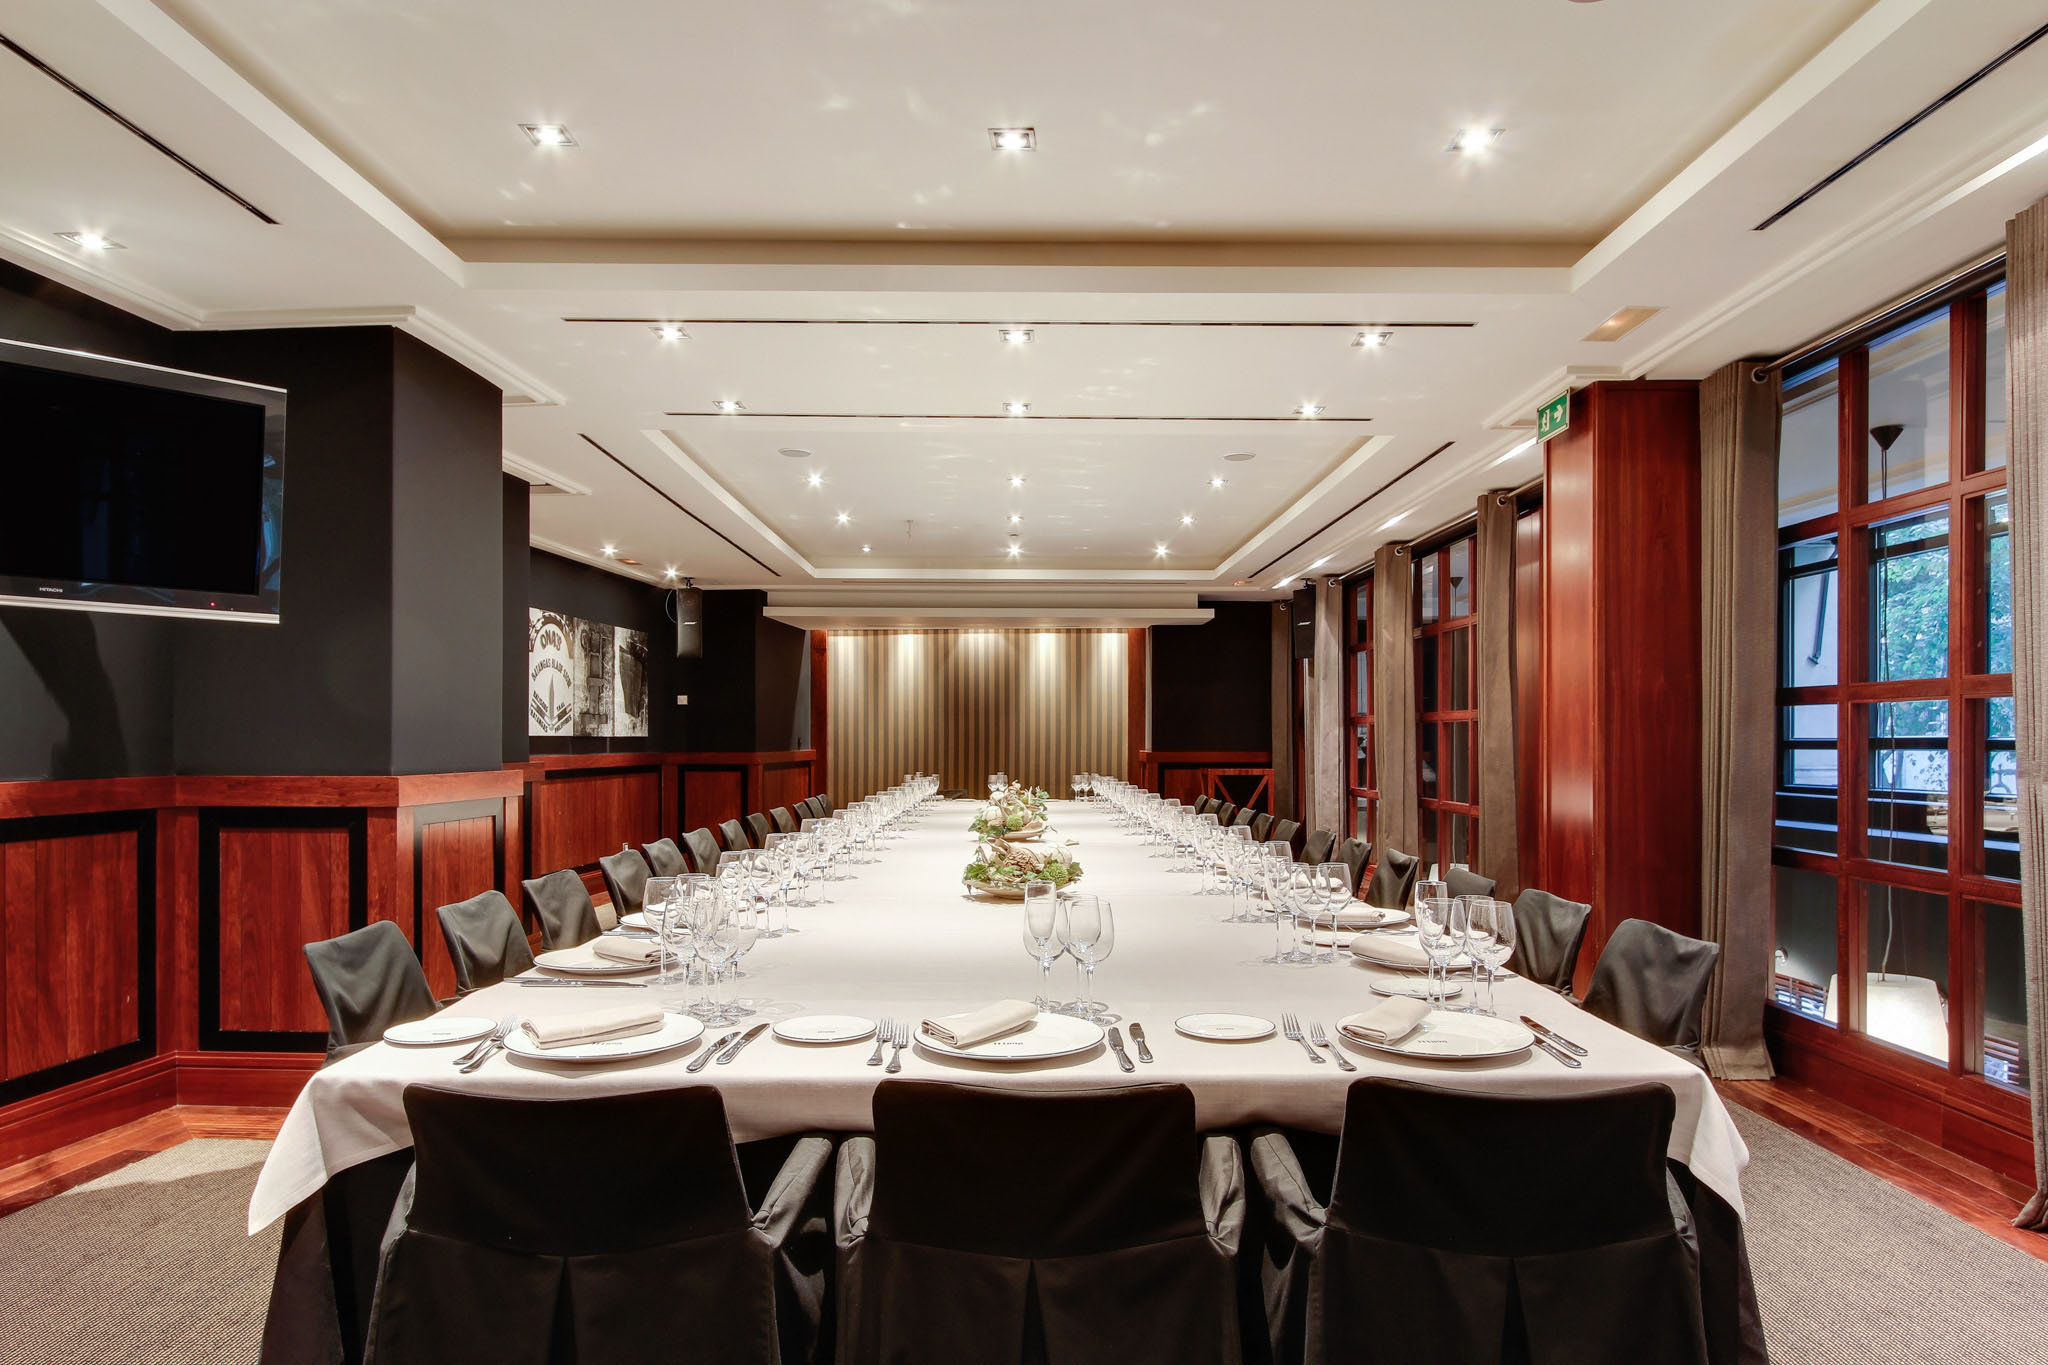 Conference Rooms For Meetings And Events In The Heart Of Barcelona